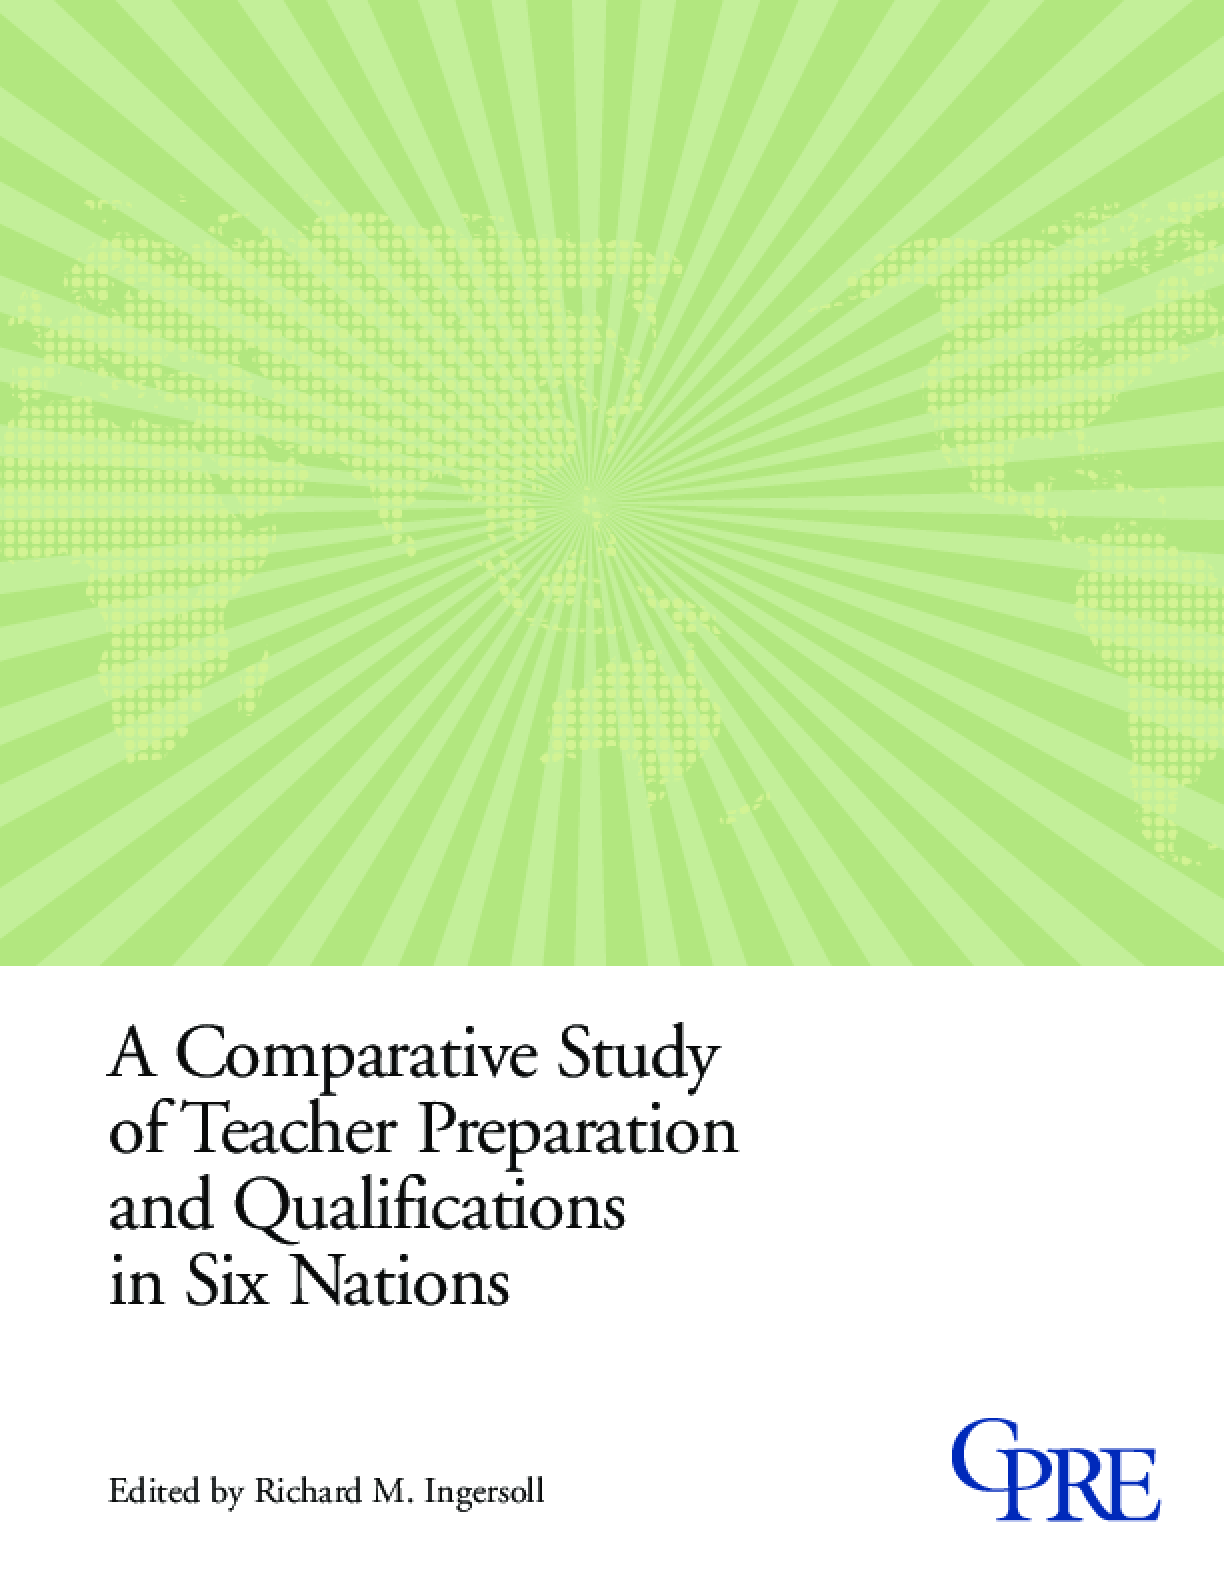 A Comparative Study of Teacher Preparation and Qualifications in Six Nations